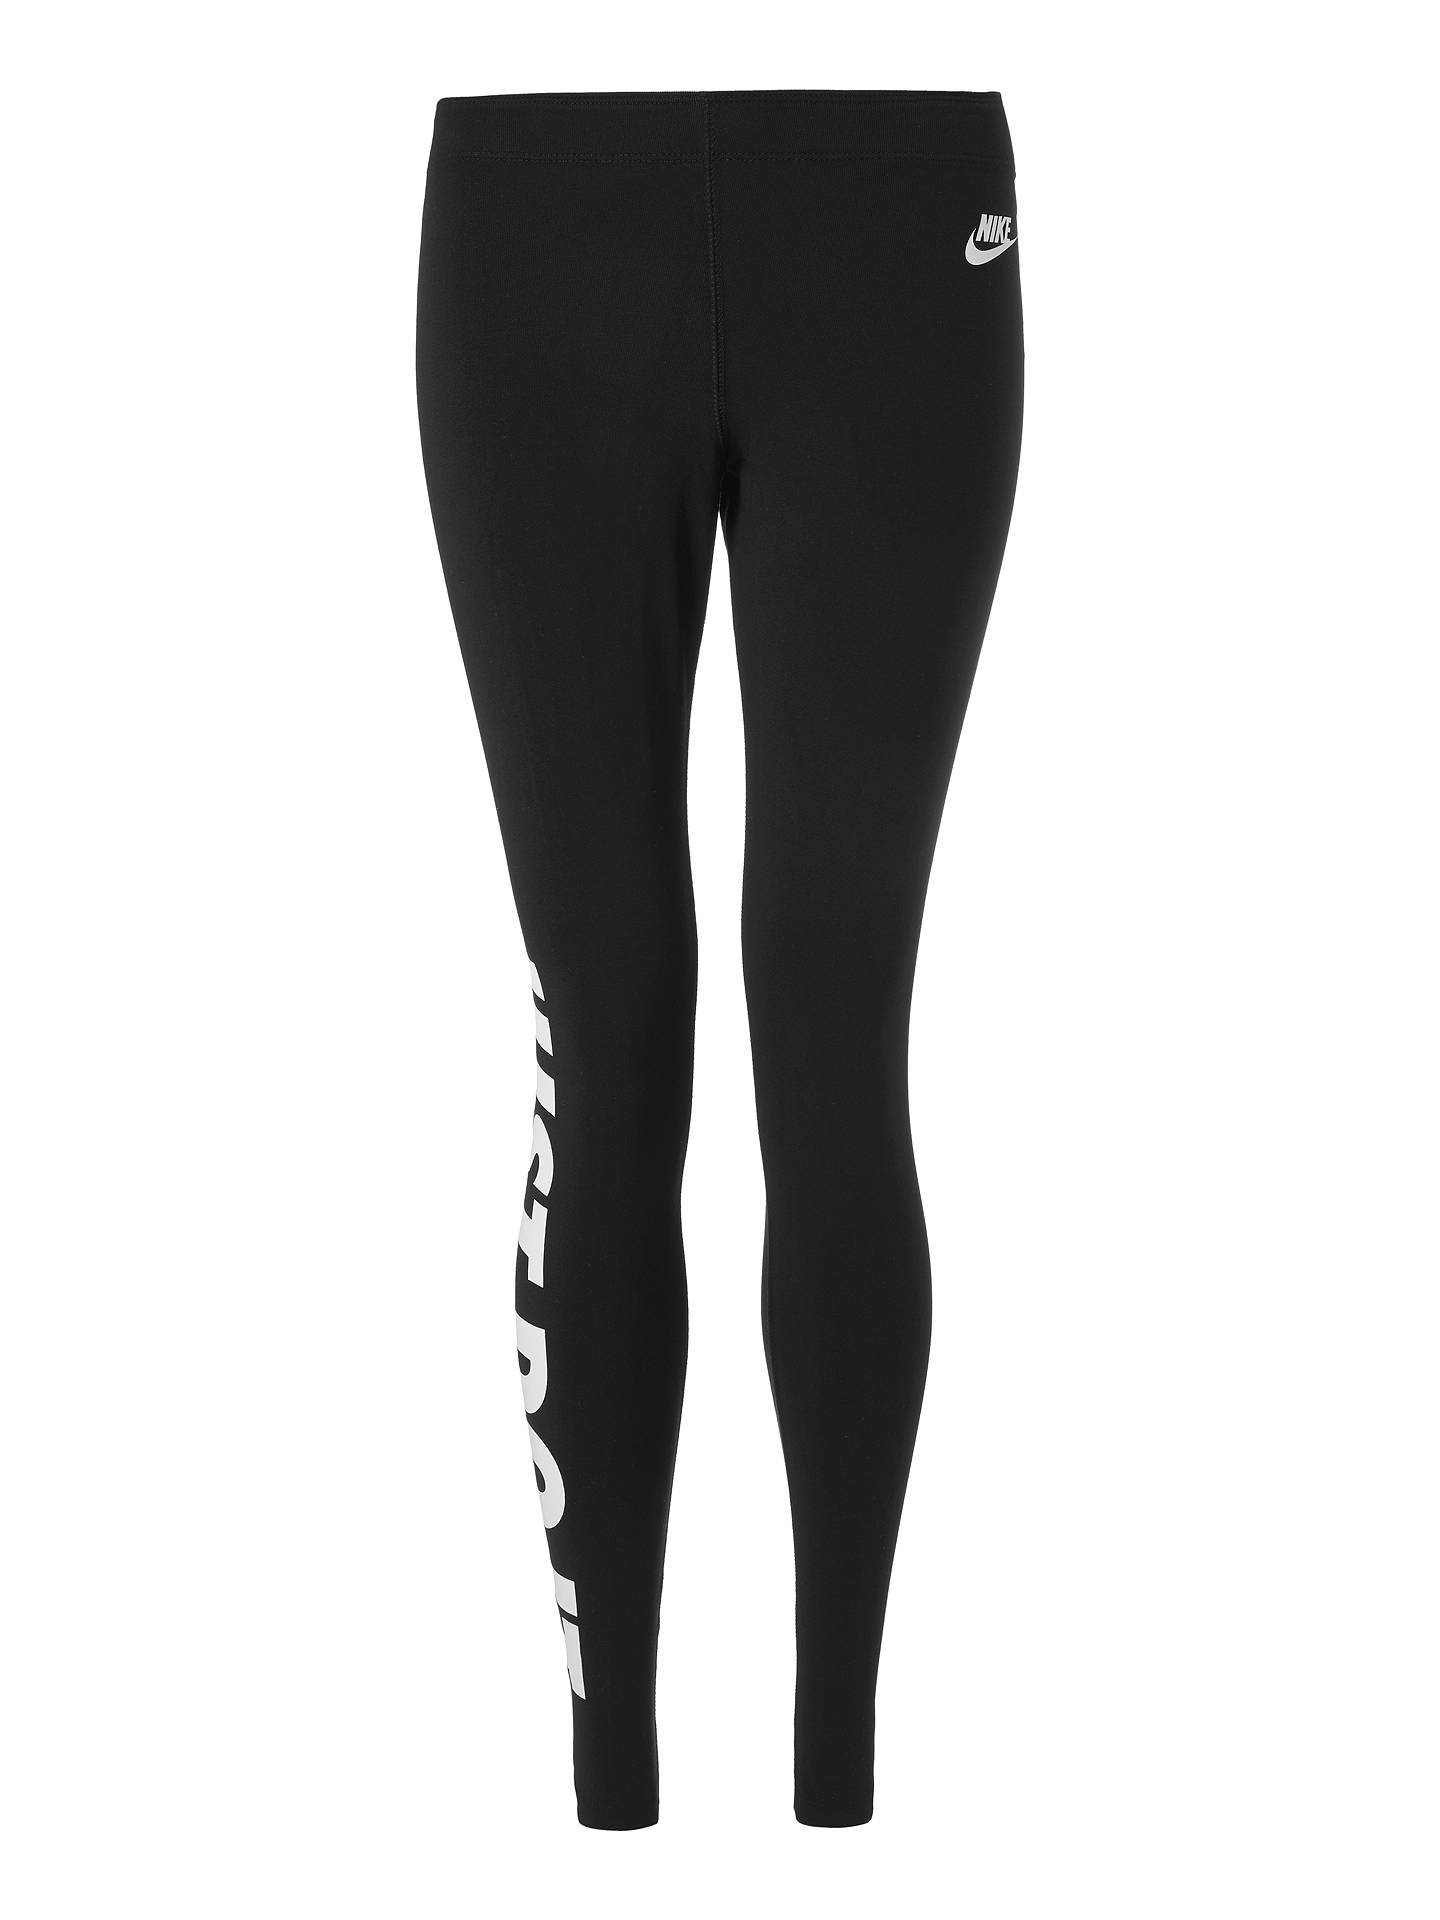 where to buy lowest discount well known Nike Just Do It Sportswear Leggings at John Lewis & Partners